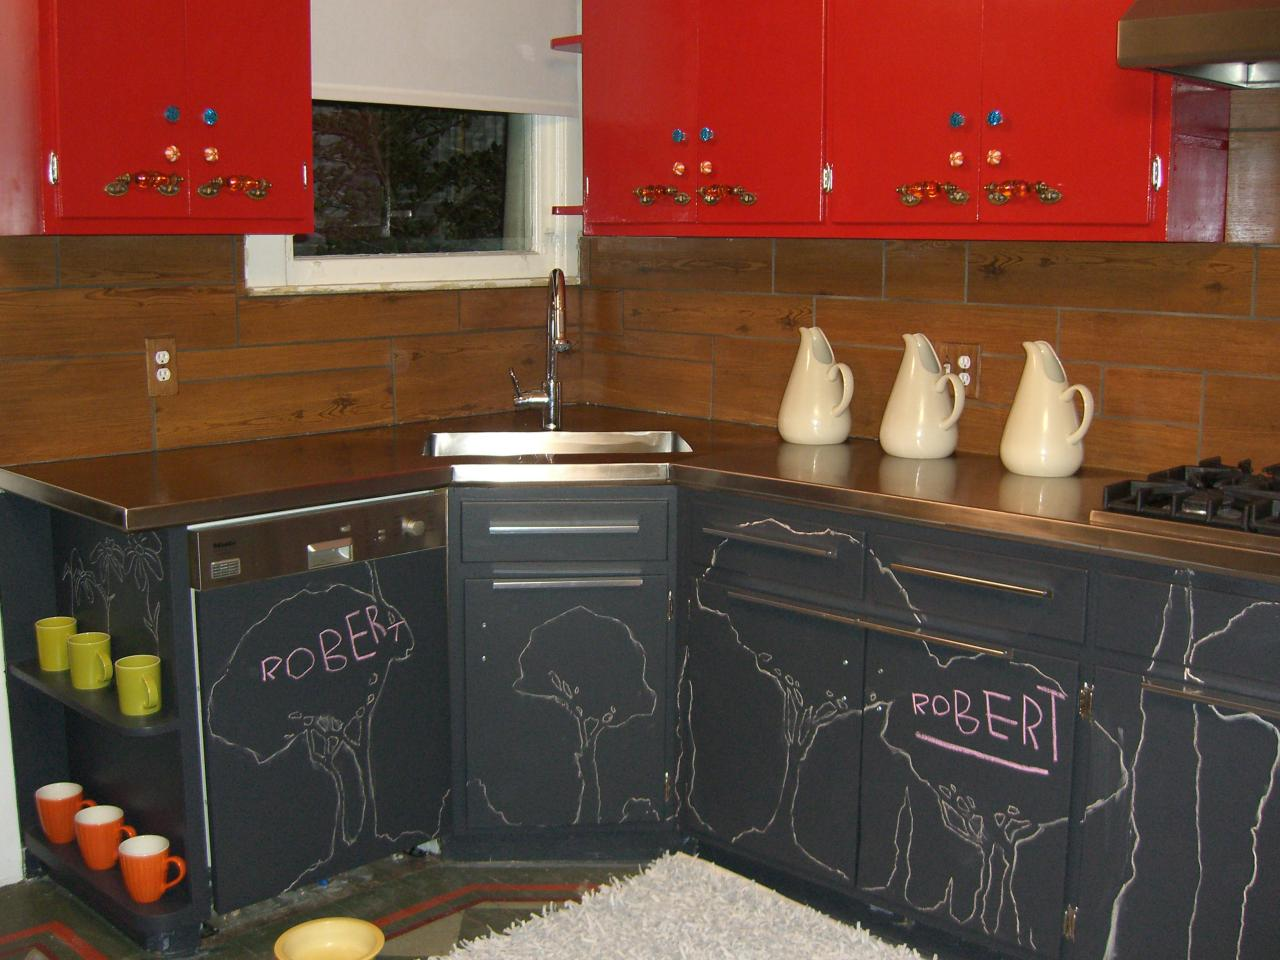 S Kitchen Cabinets Interesting Repainting Kitchen Cabinets Pictures & Ideas From Hgtv  Hgtv Design Ideas